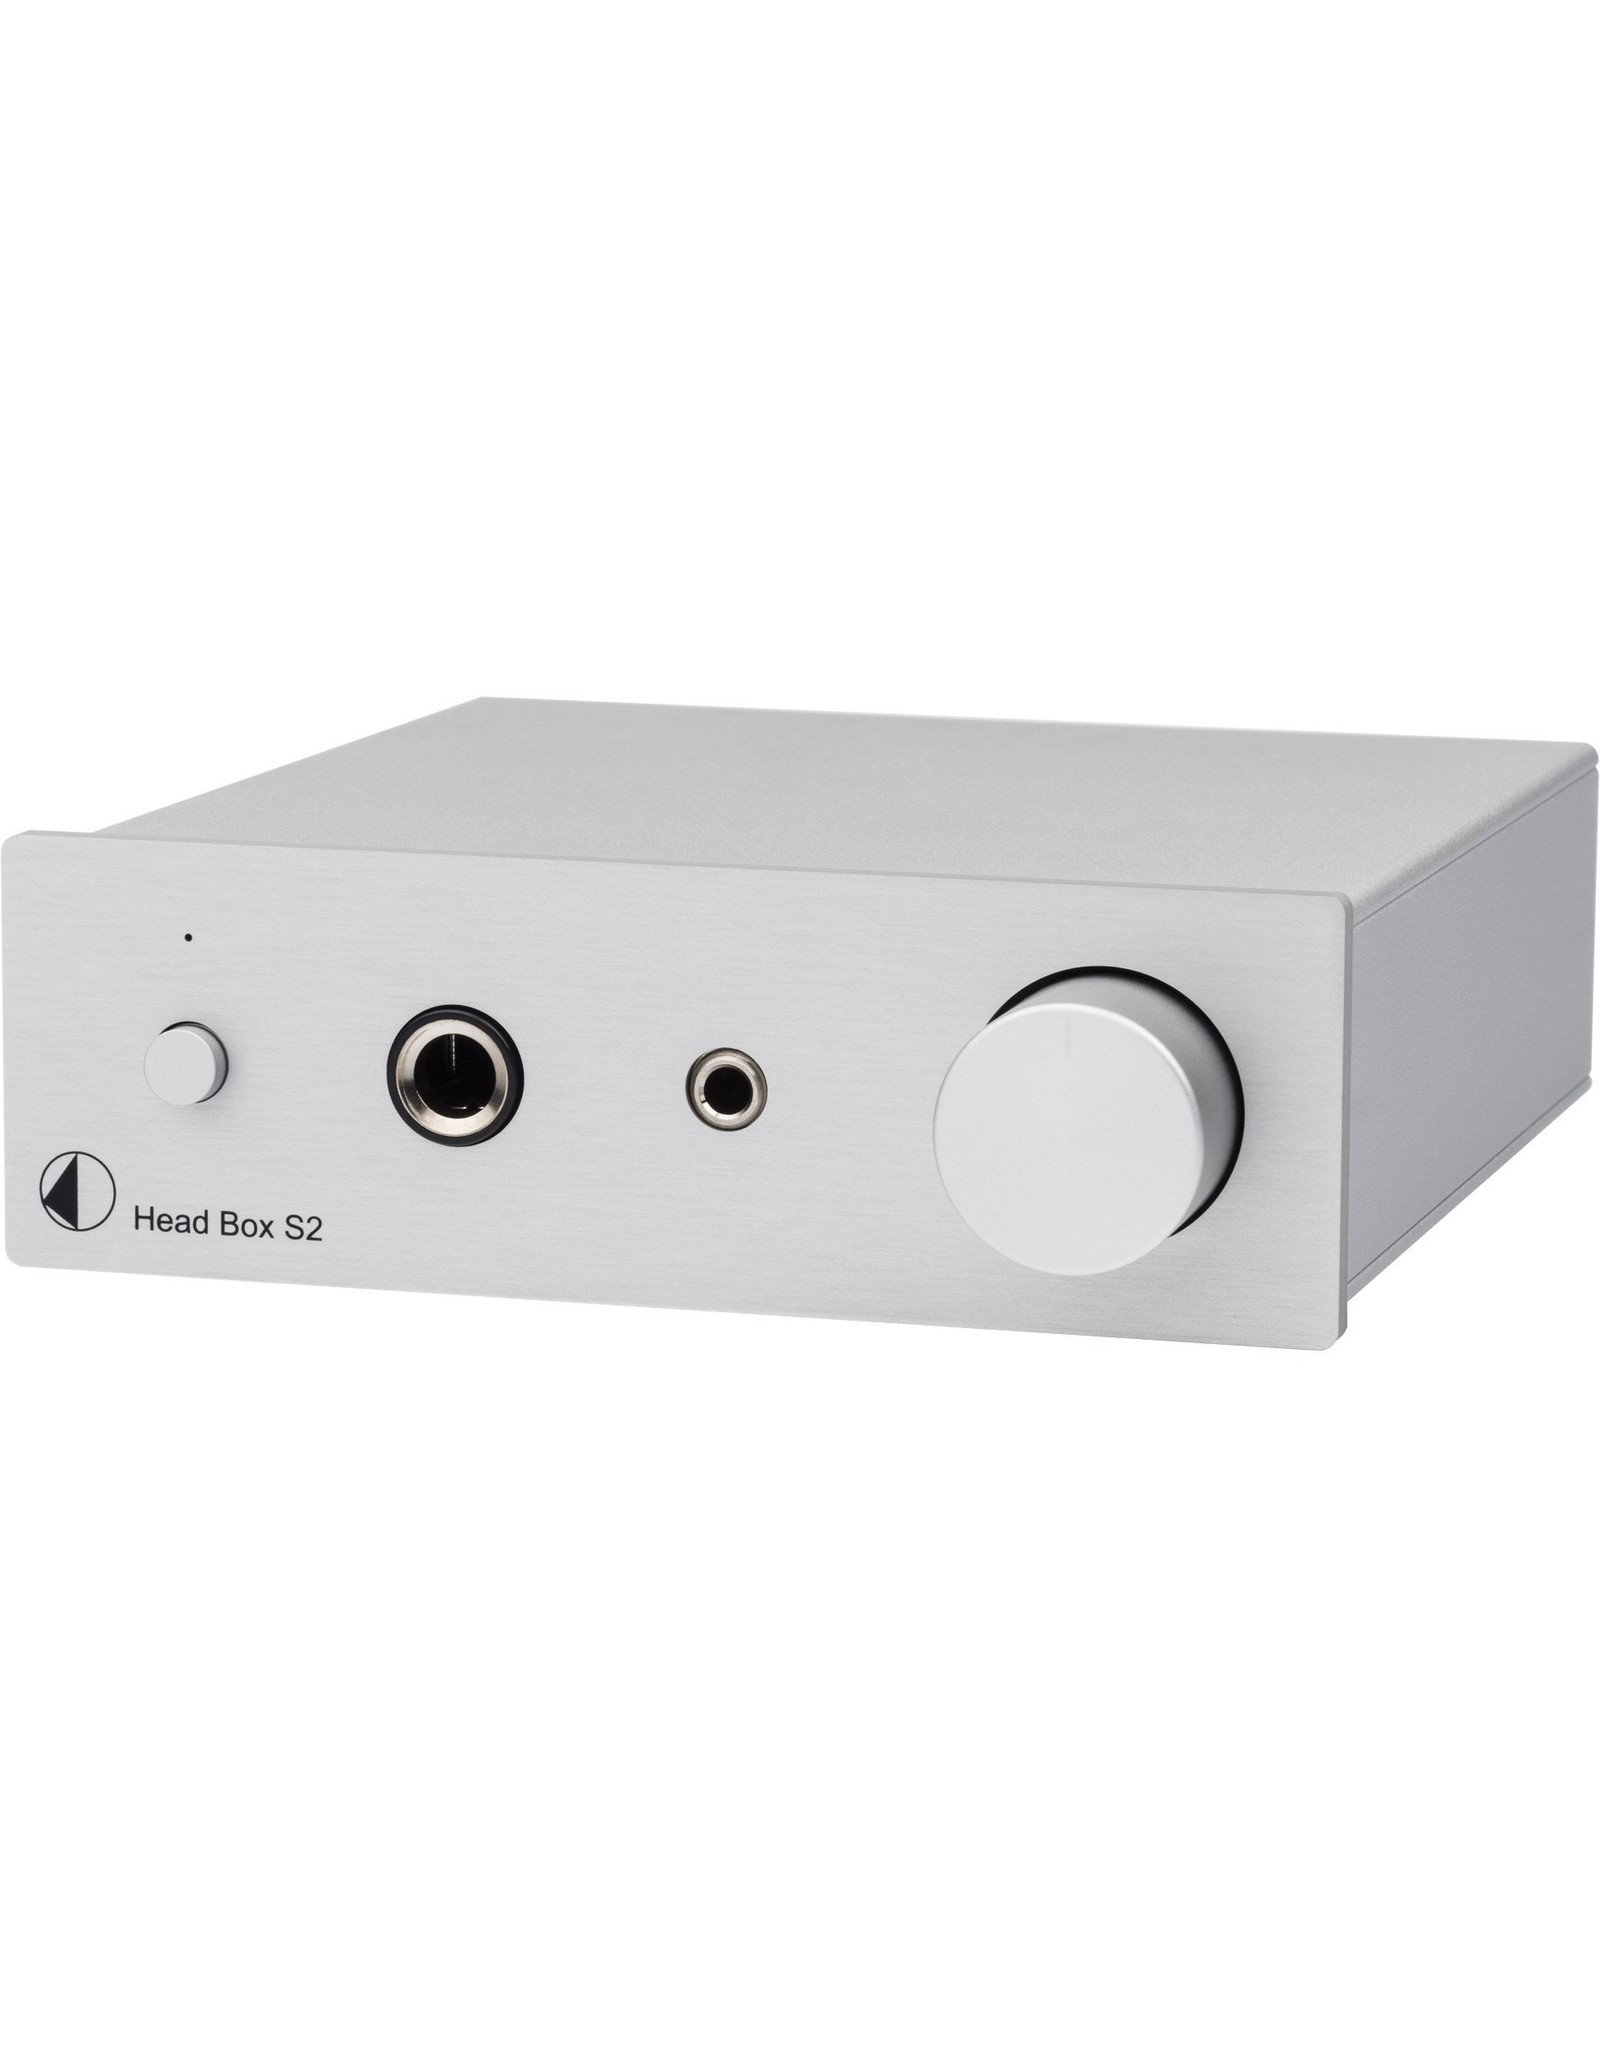 Pro-Ject Pro-Ject Head Box S2 Headphone Amplifier^